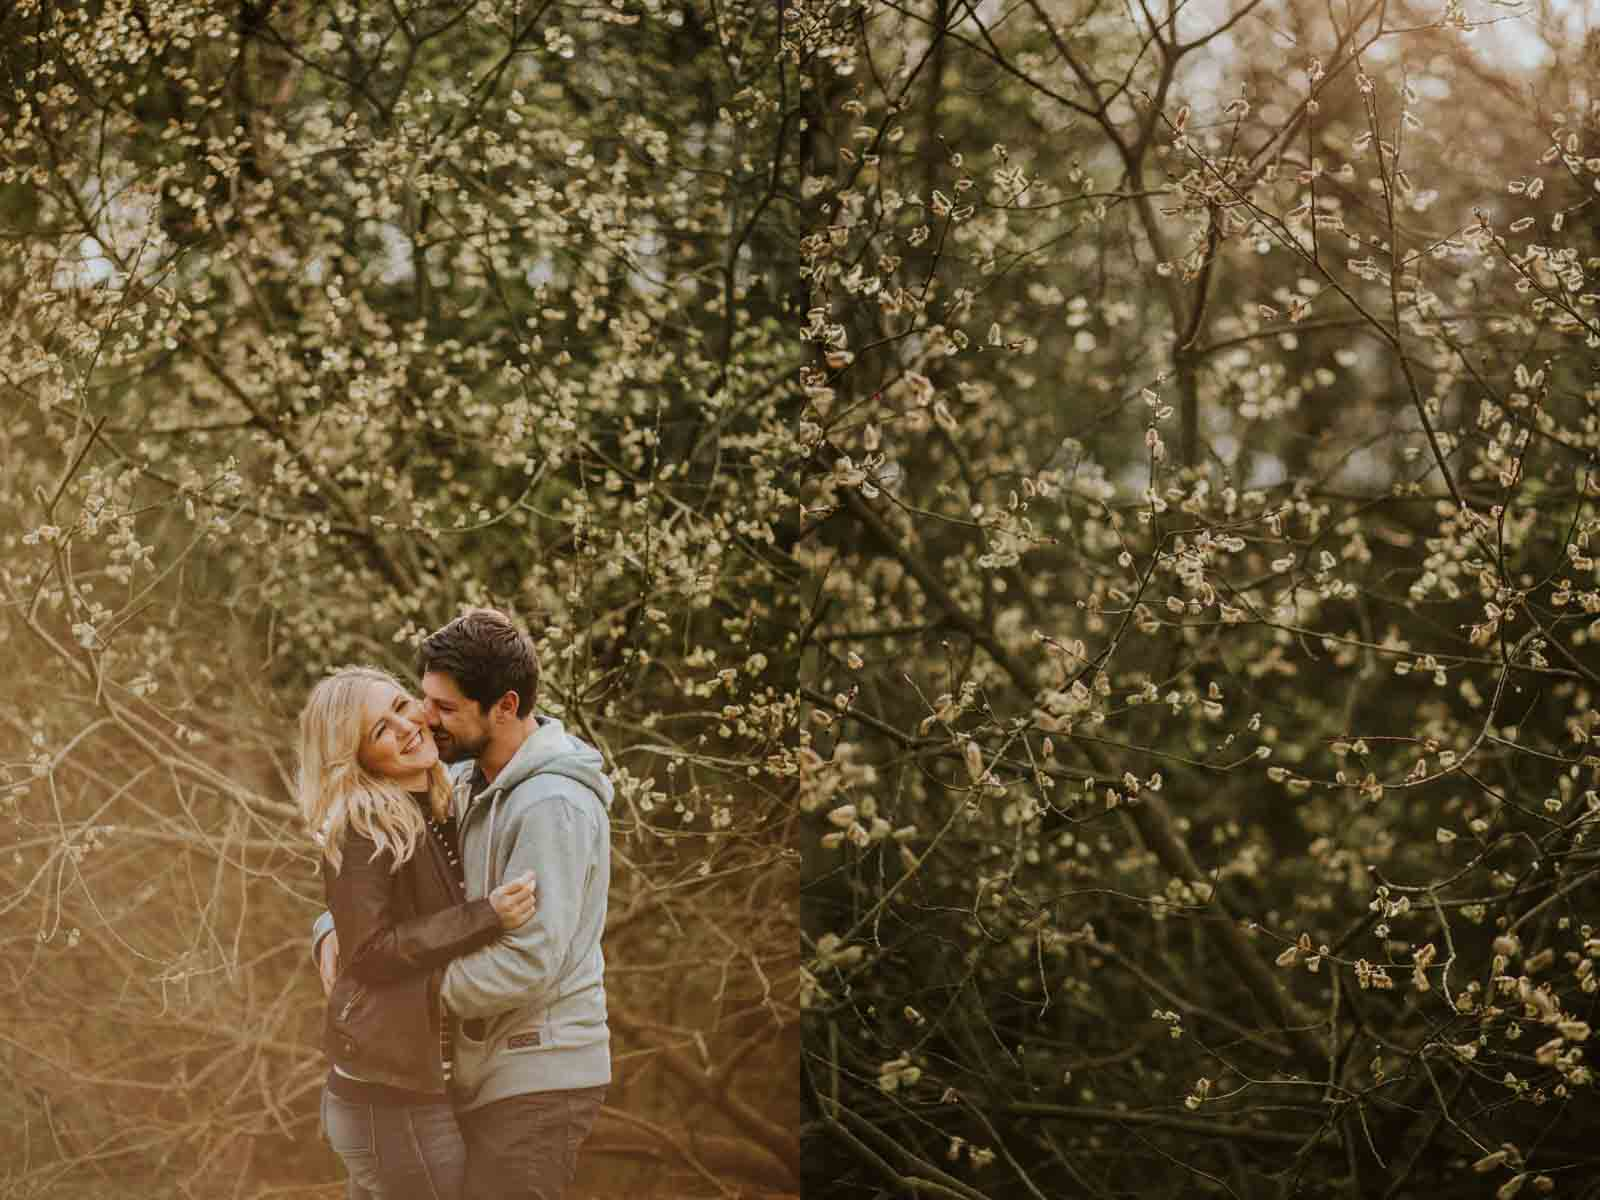 Finedon-Pocket-Park-Engagement-Session-3